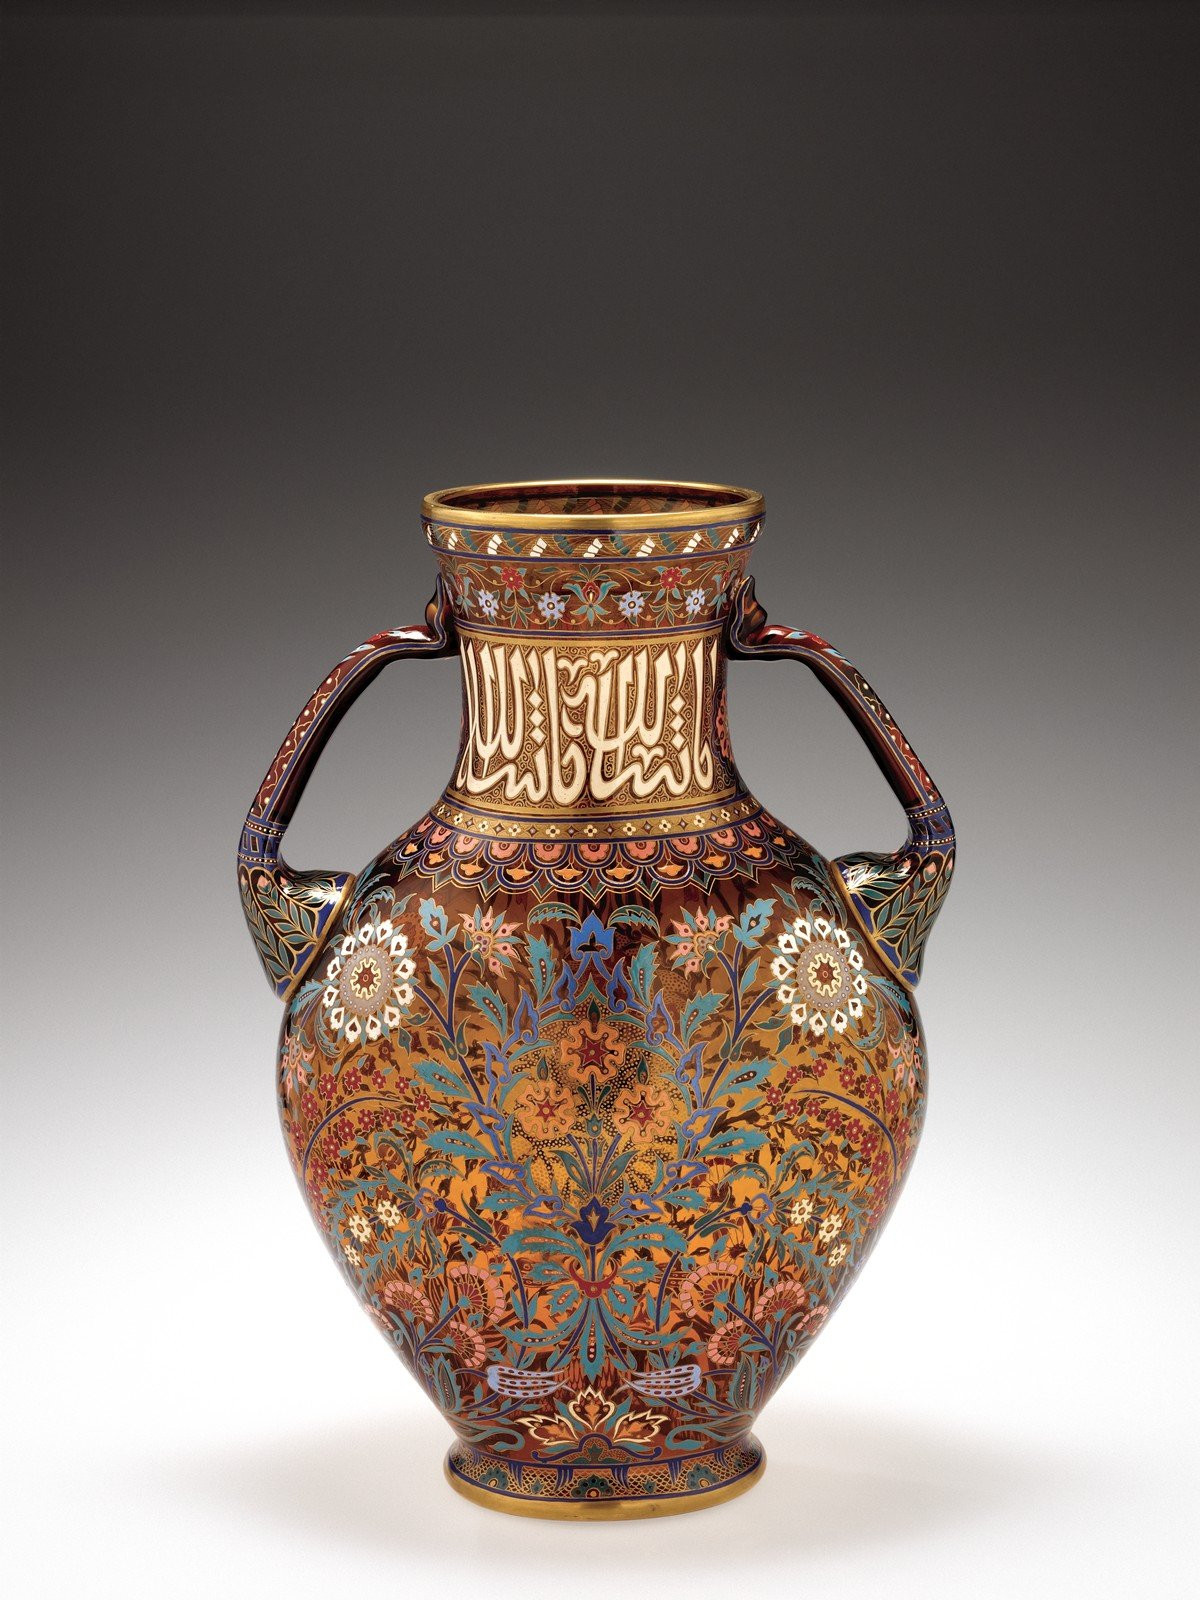 crystal vase with gold of collection search corning museum of glass throughout persian series